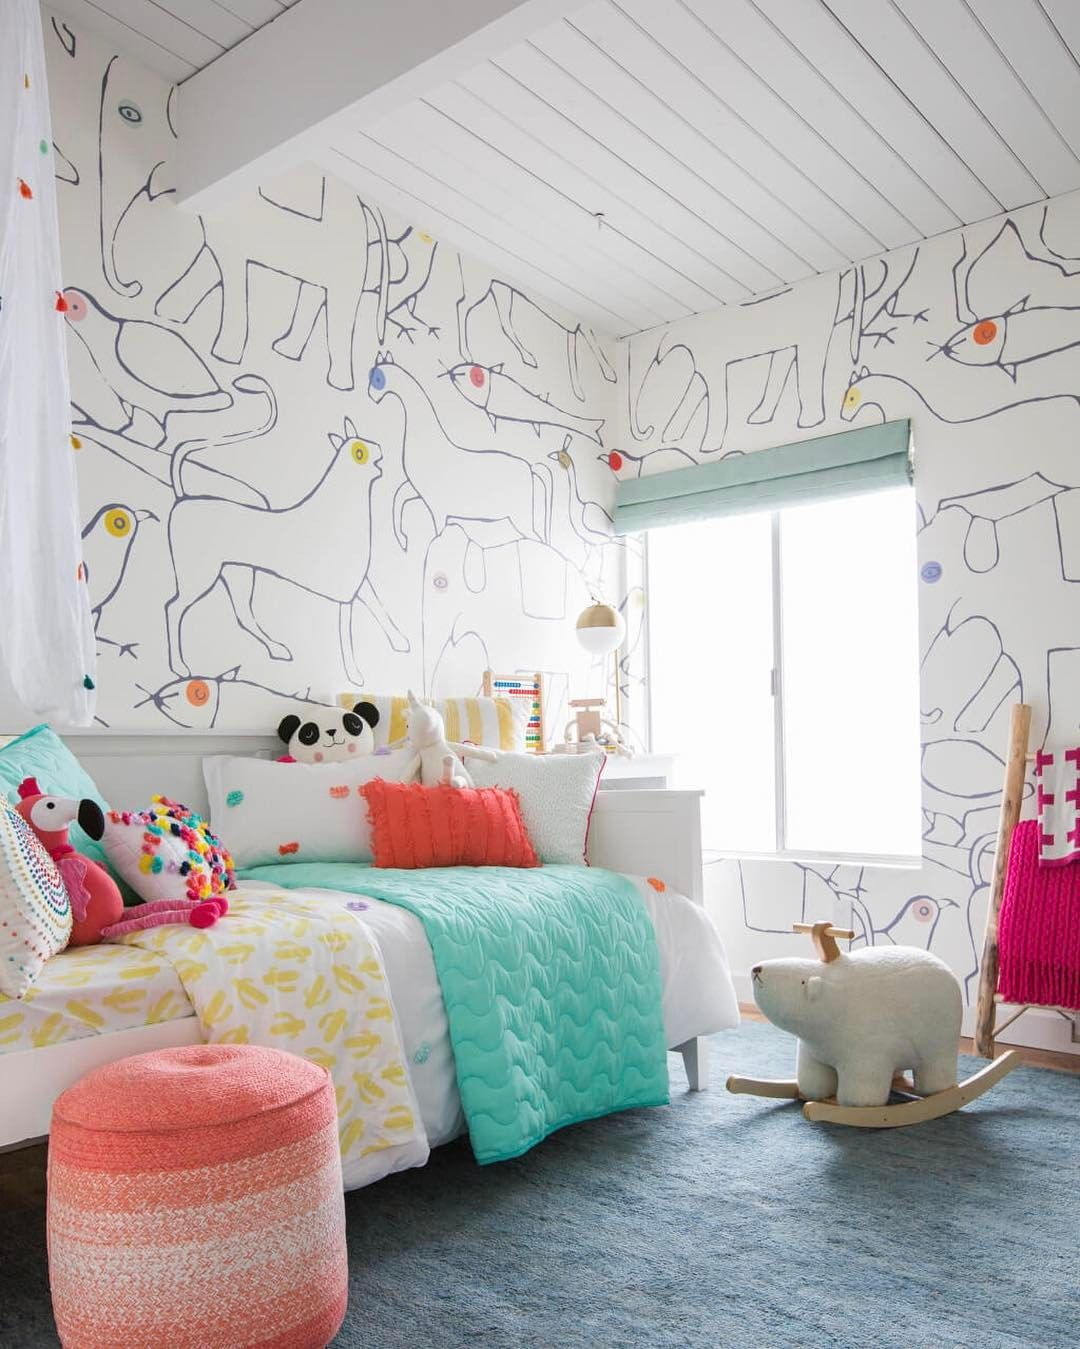 Pin By LJB Me . On Model Me: Kid Rooms